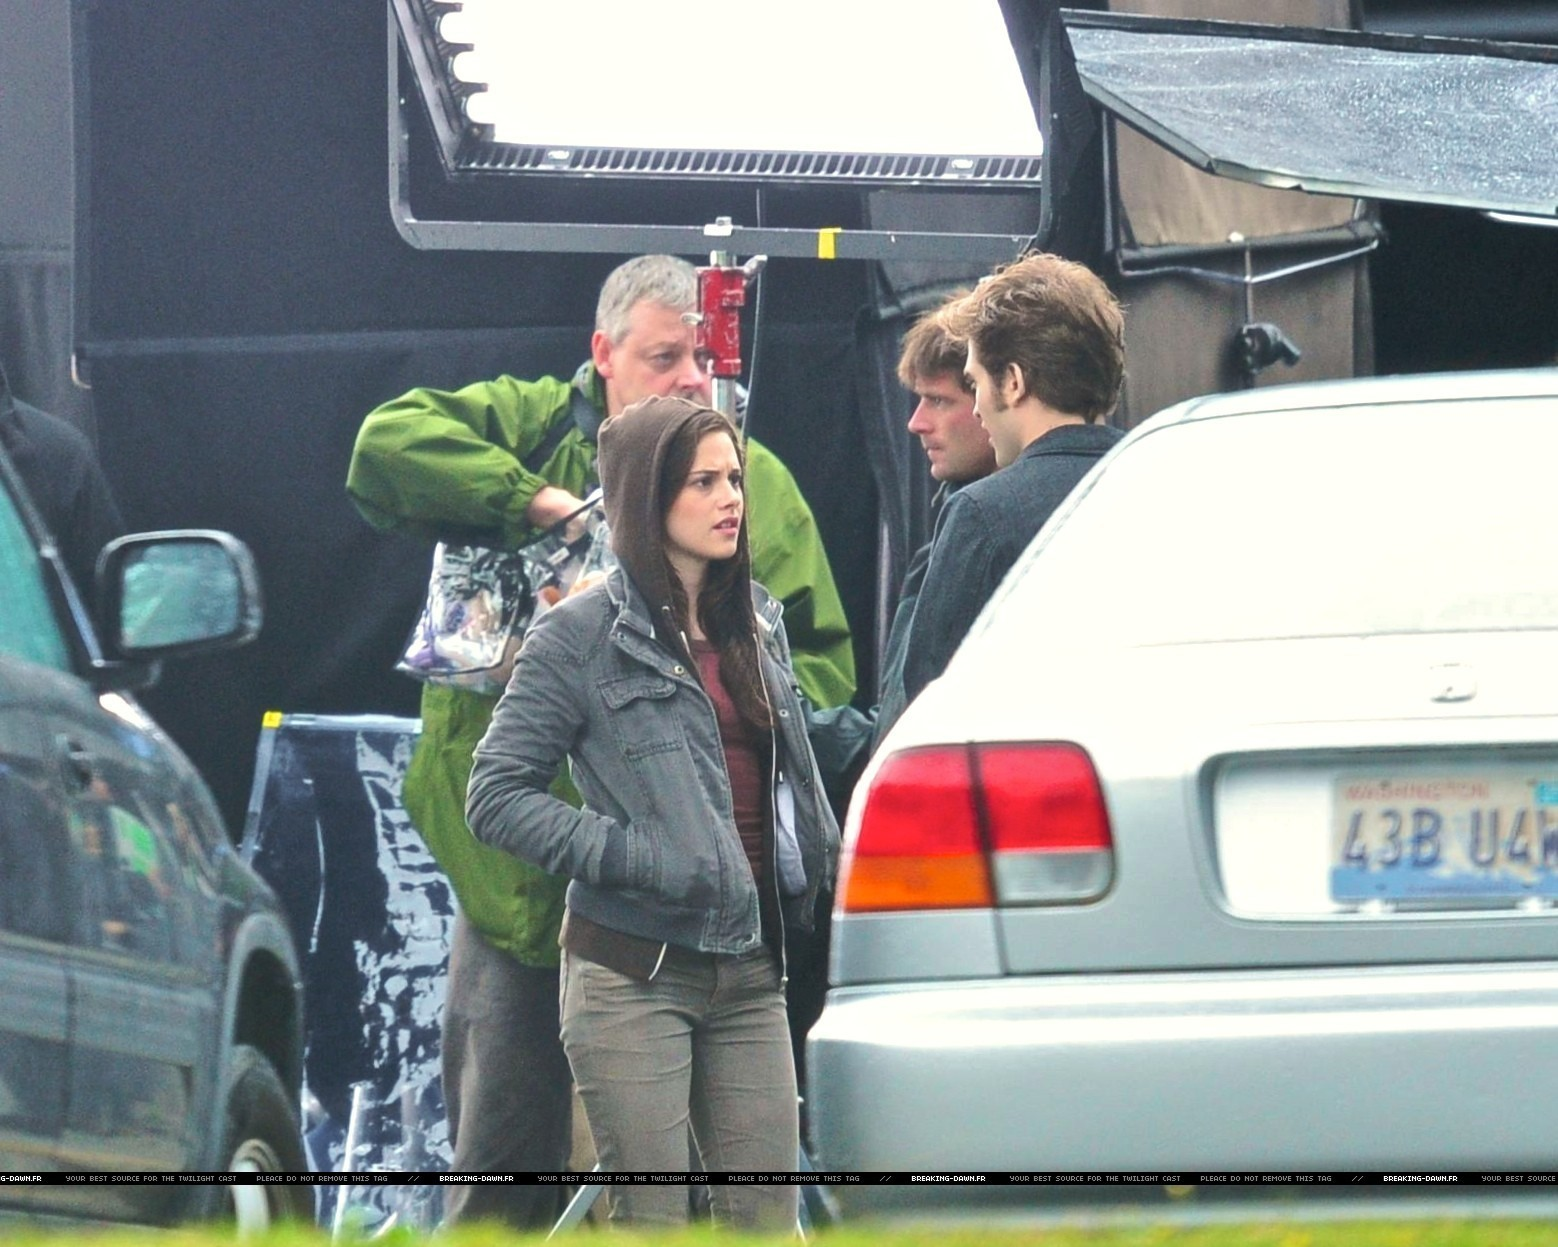 http://images2.fanpop.com/images/photos/8000000/Rob-kristen-on-the-set-of-Eclipse-yesterday-twilight-series-8080085-1558-1247.jpg